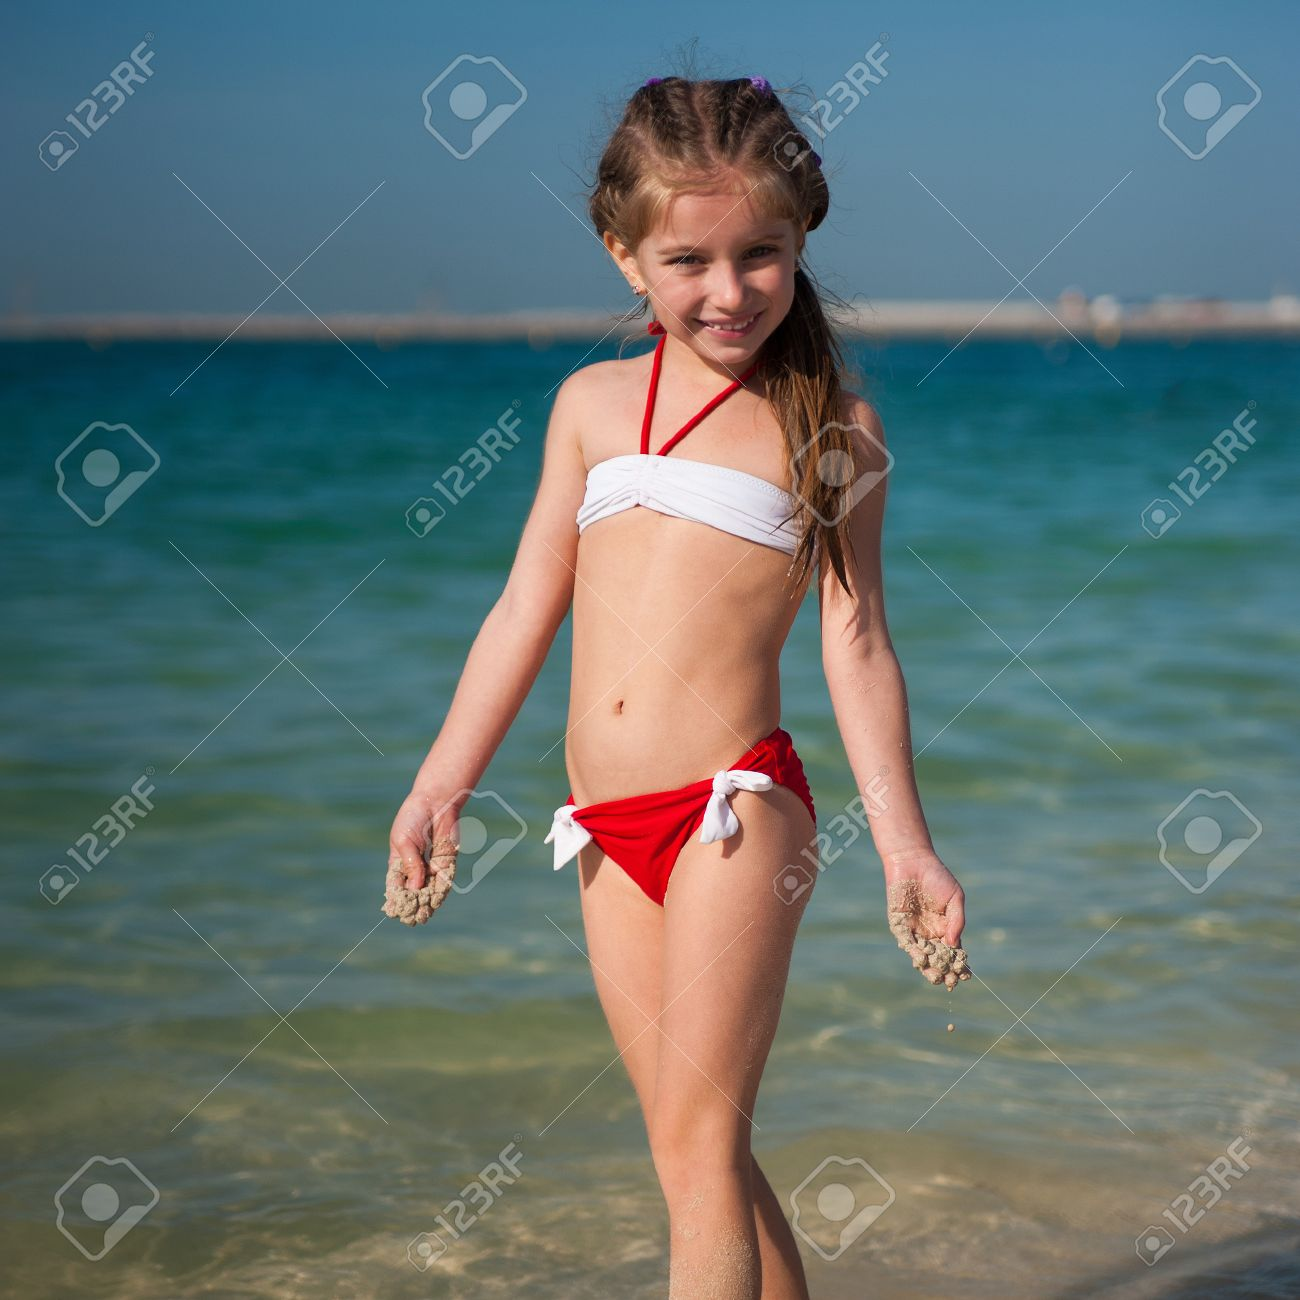 cute little girl in red-and-white swimsuit on the beach stock photo